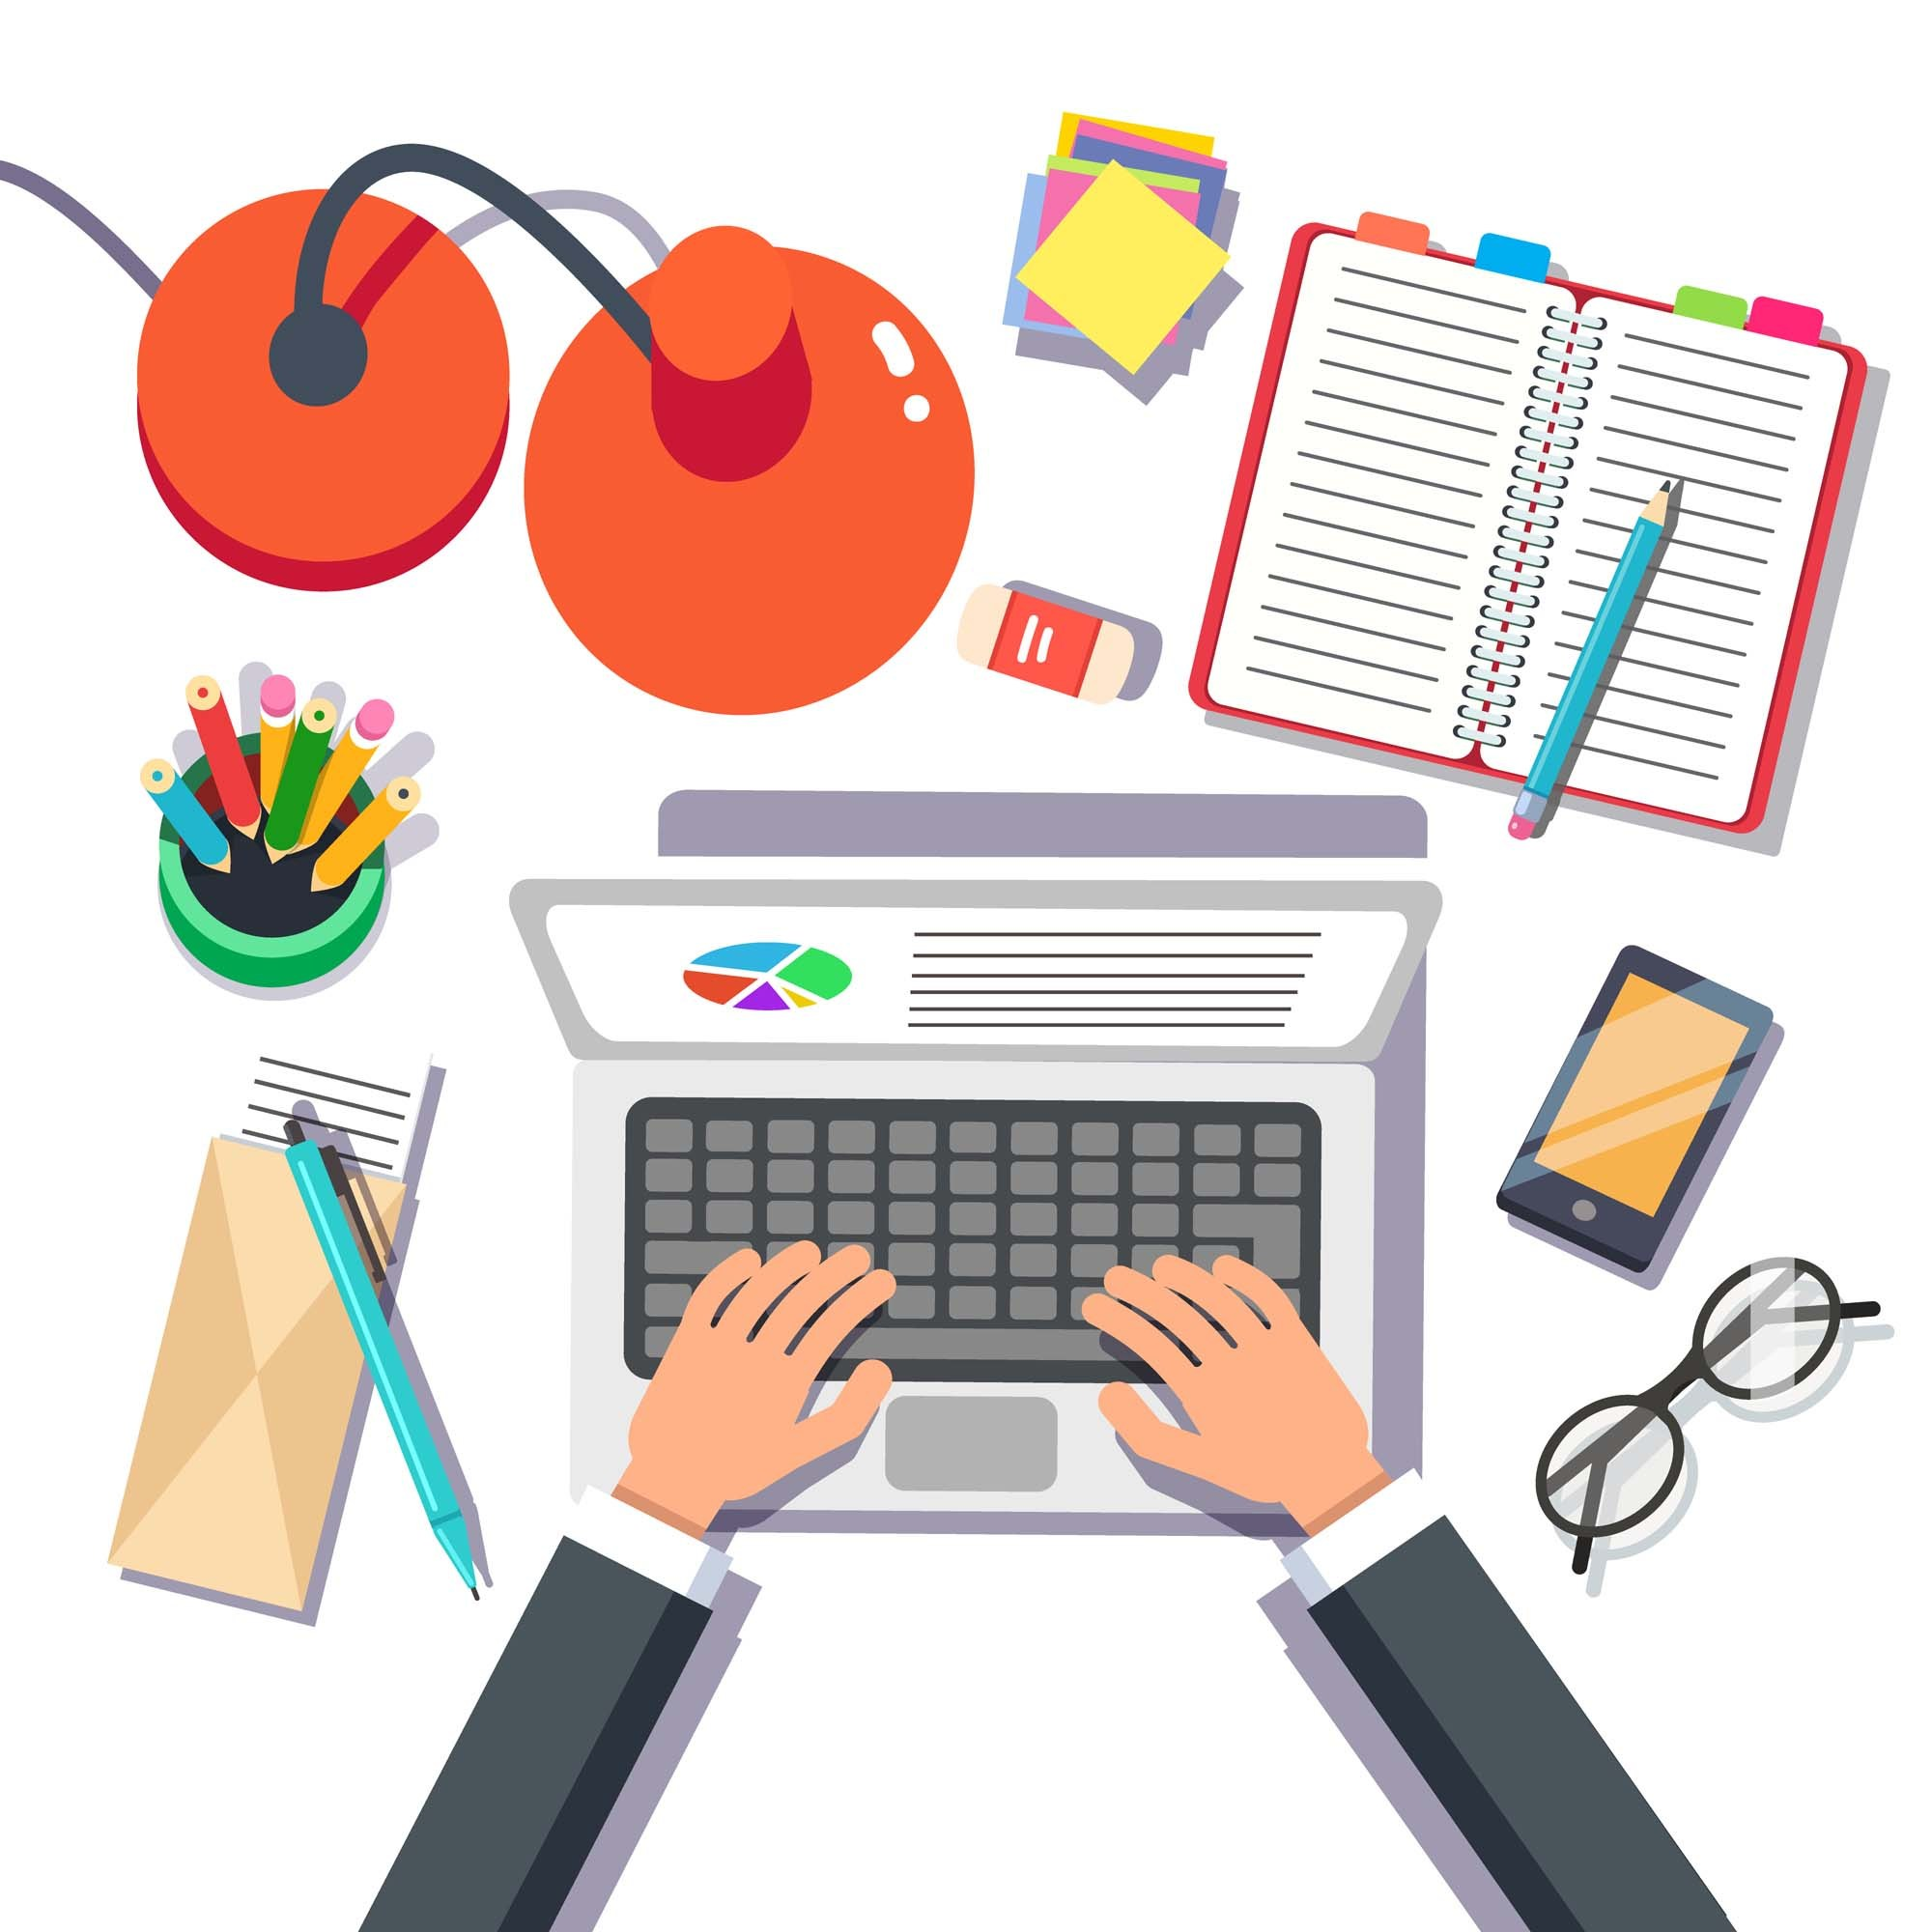 Businessman writing sales or marketing report on a laptop. Top view. Flat style vector illustration.